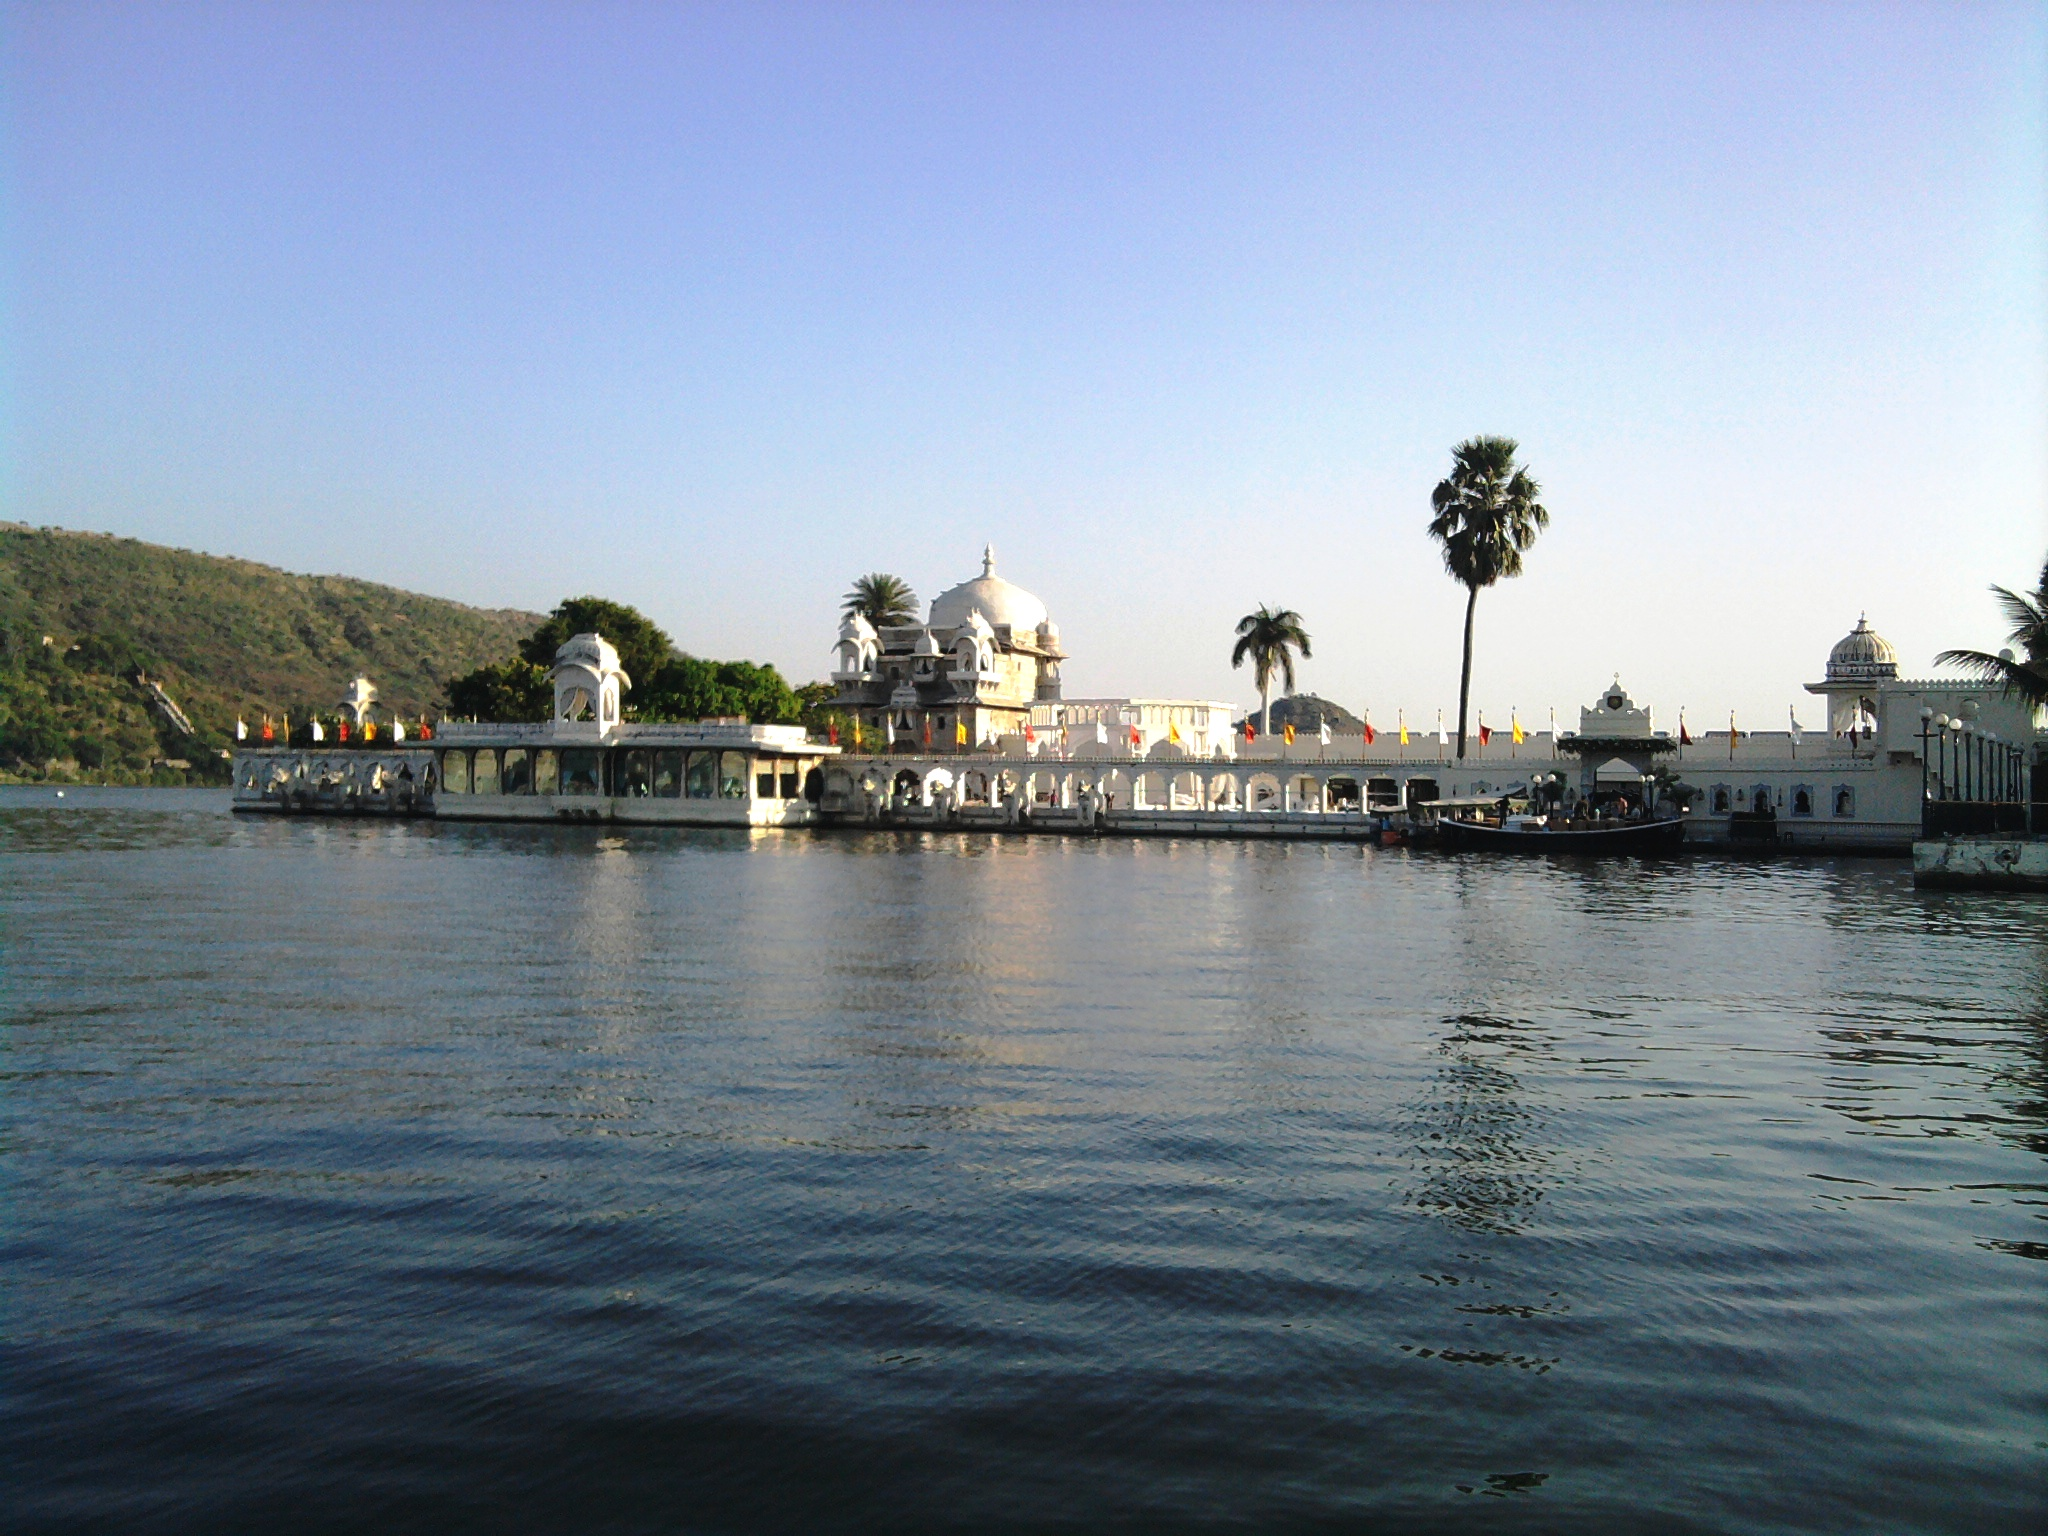 The Lake Palace and the Jag Mandir must visit while in Udaipur